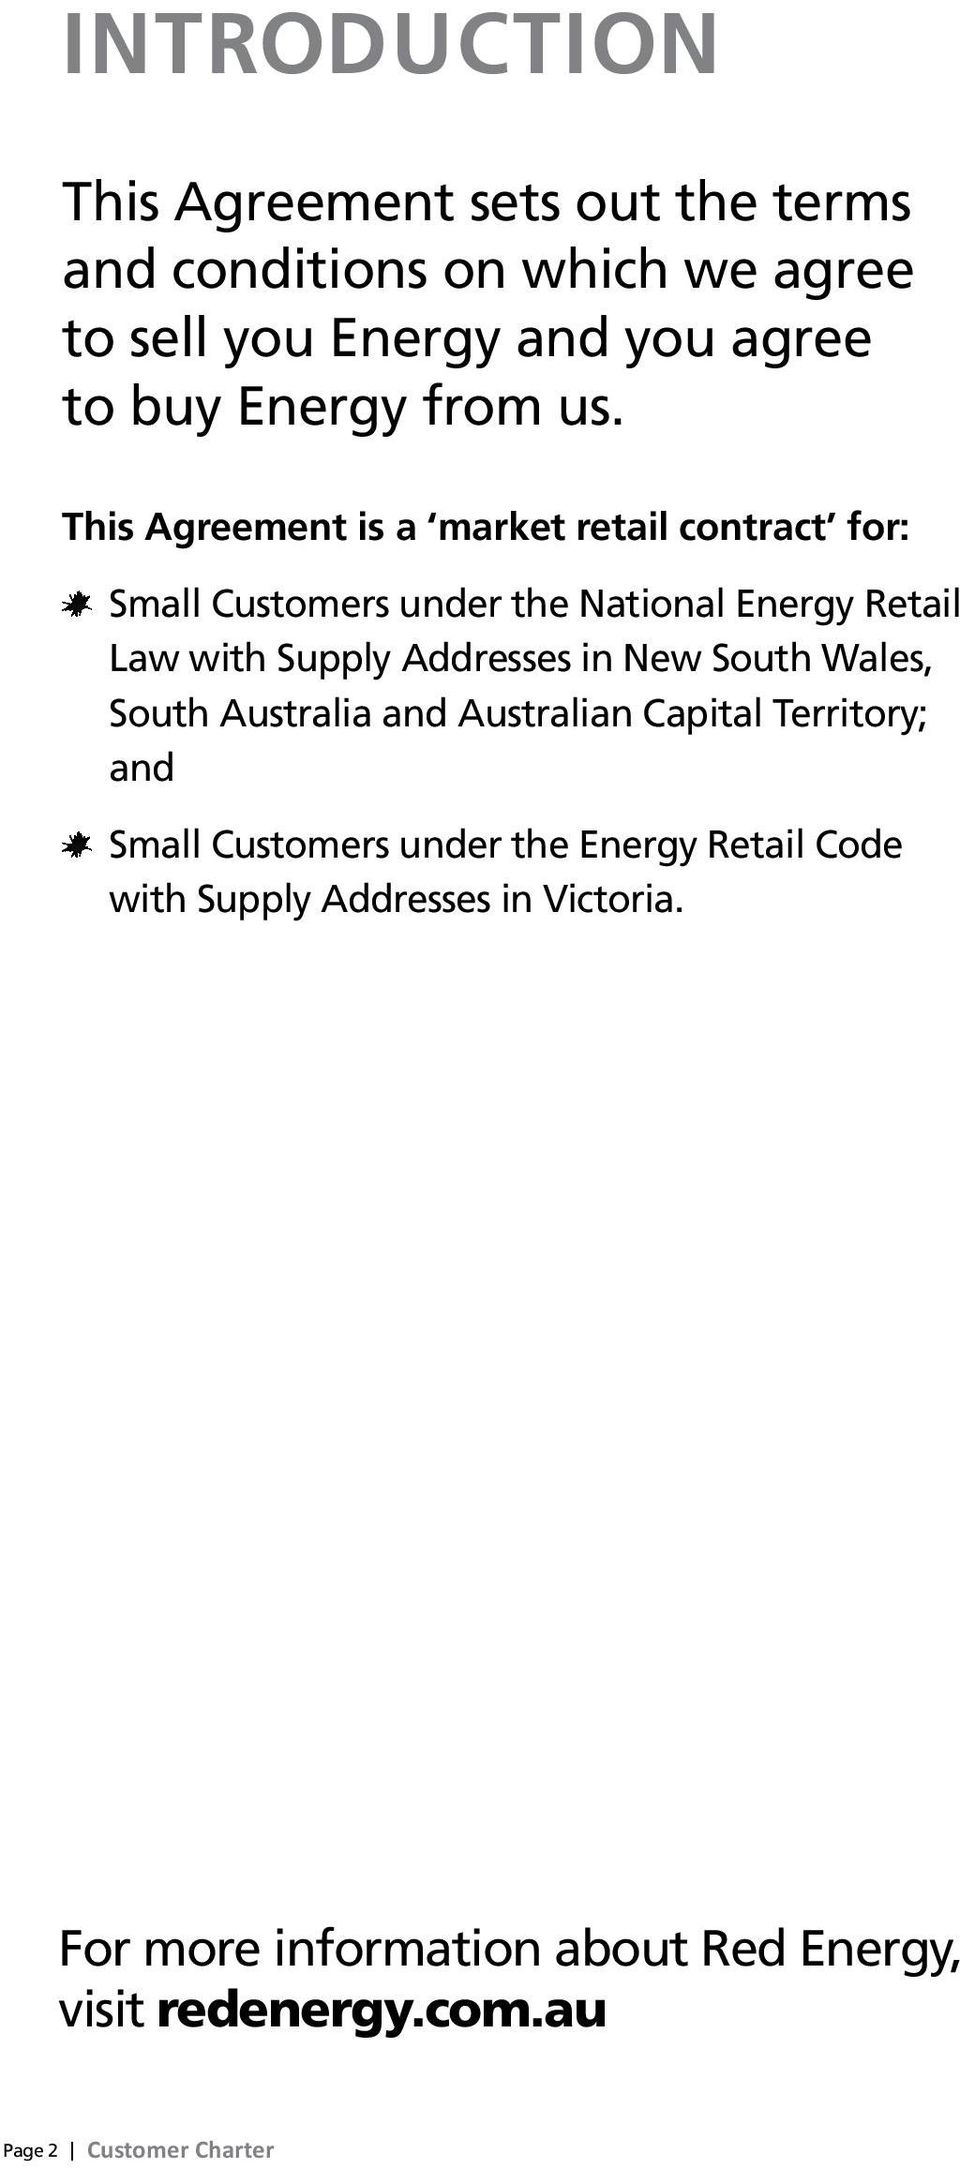 This Agreement is a market retail contract for: Small Customers under the National Energy Retail Law with Supply Addresses